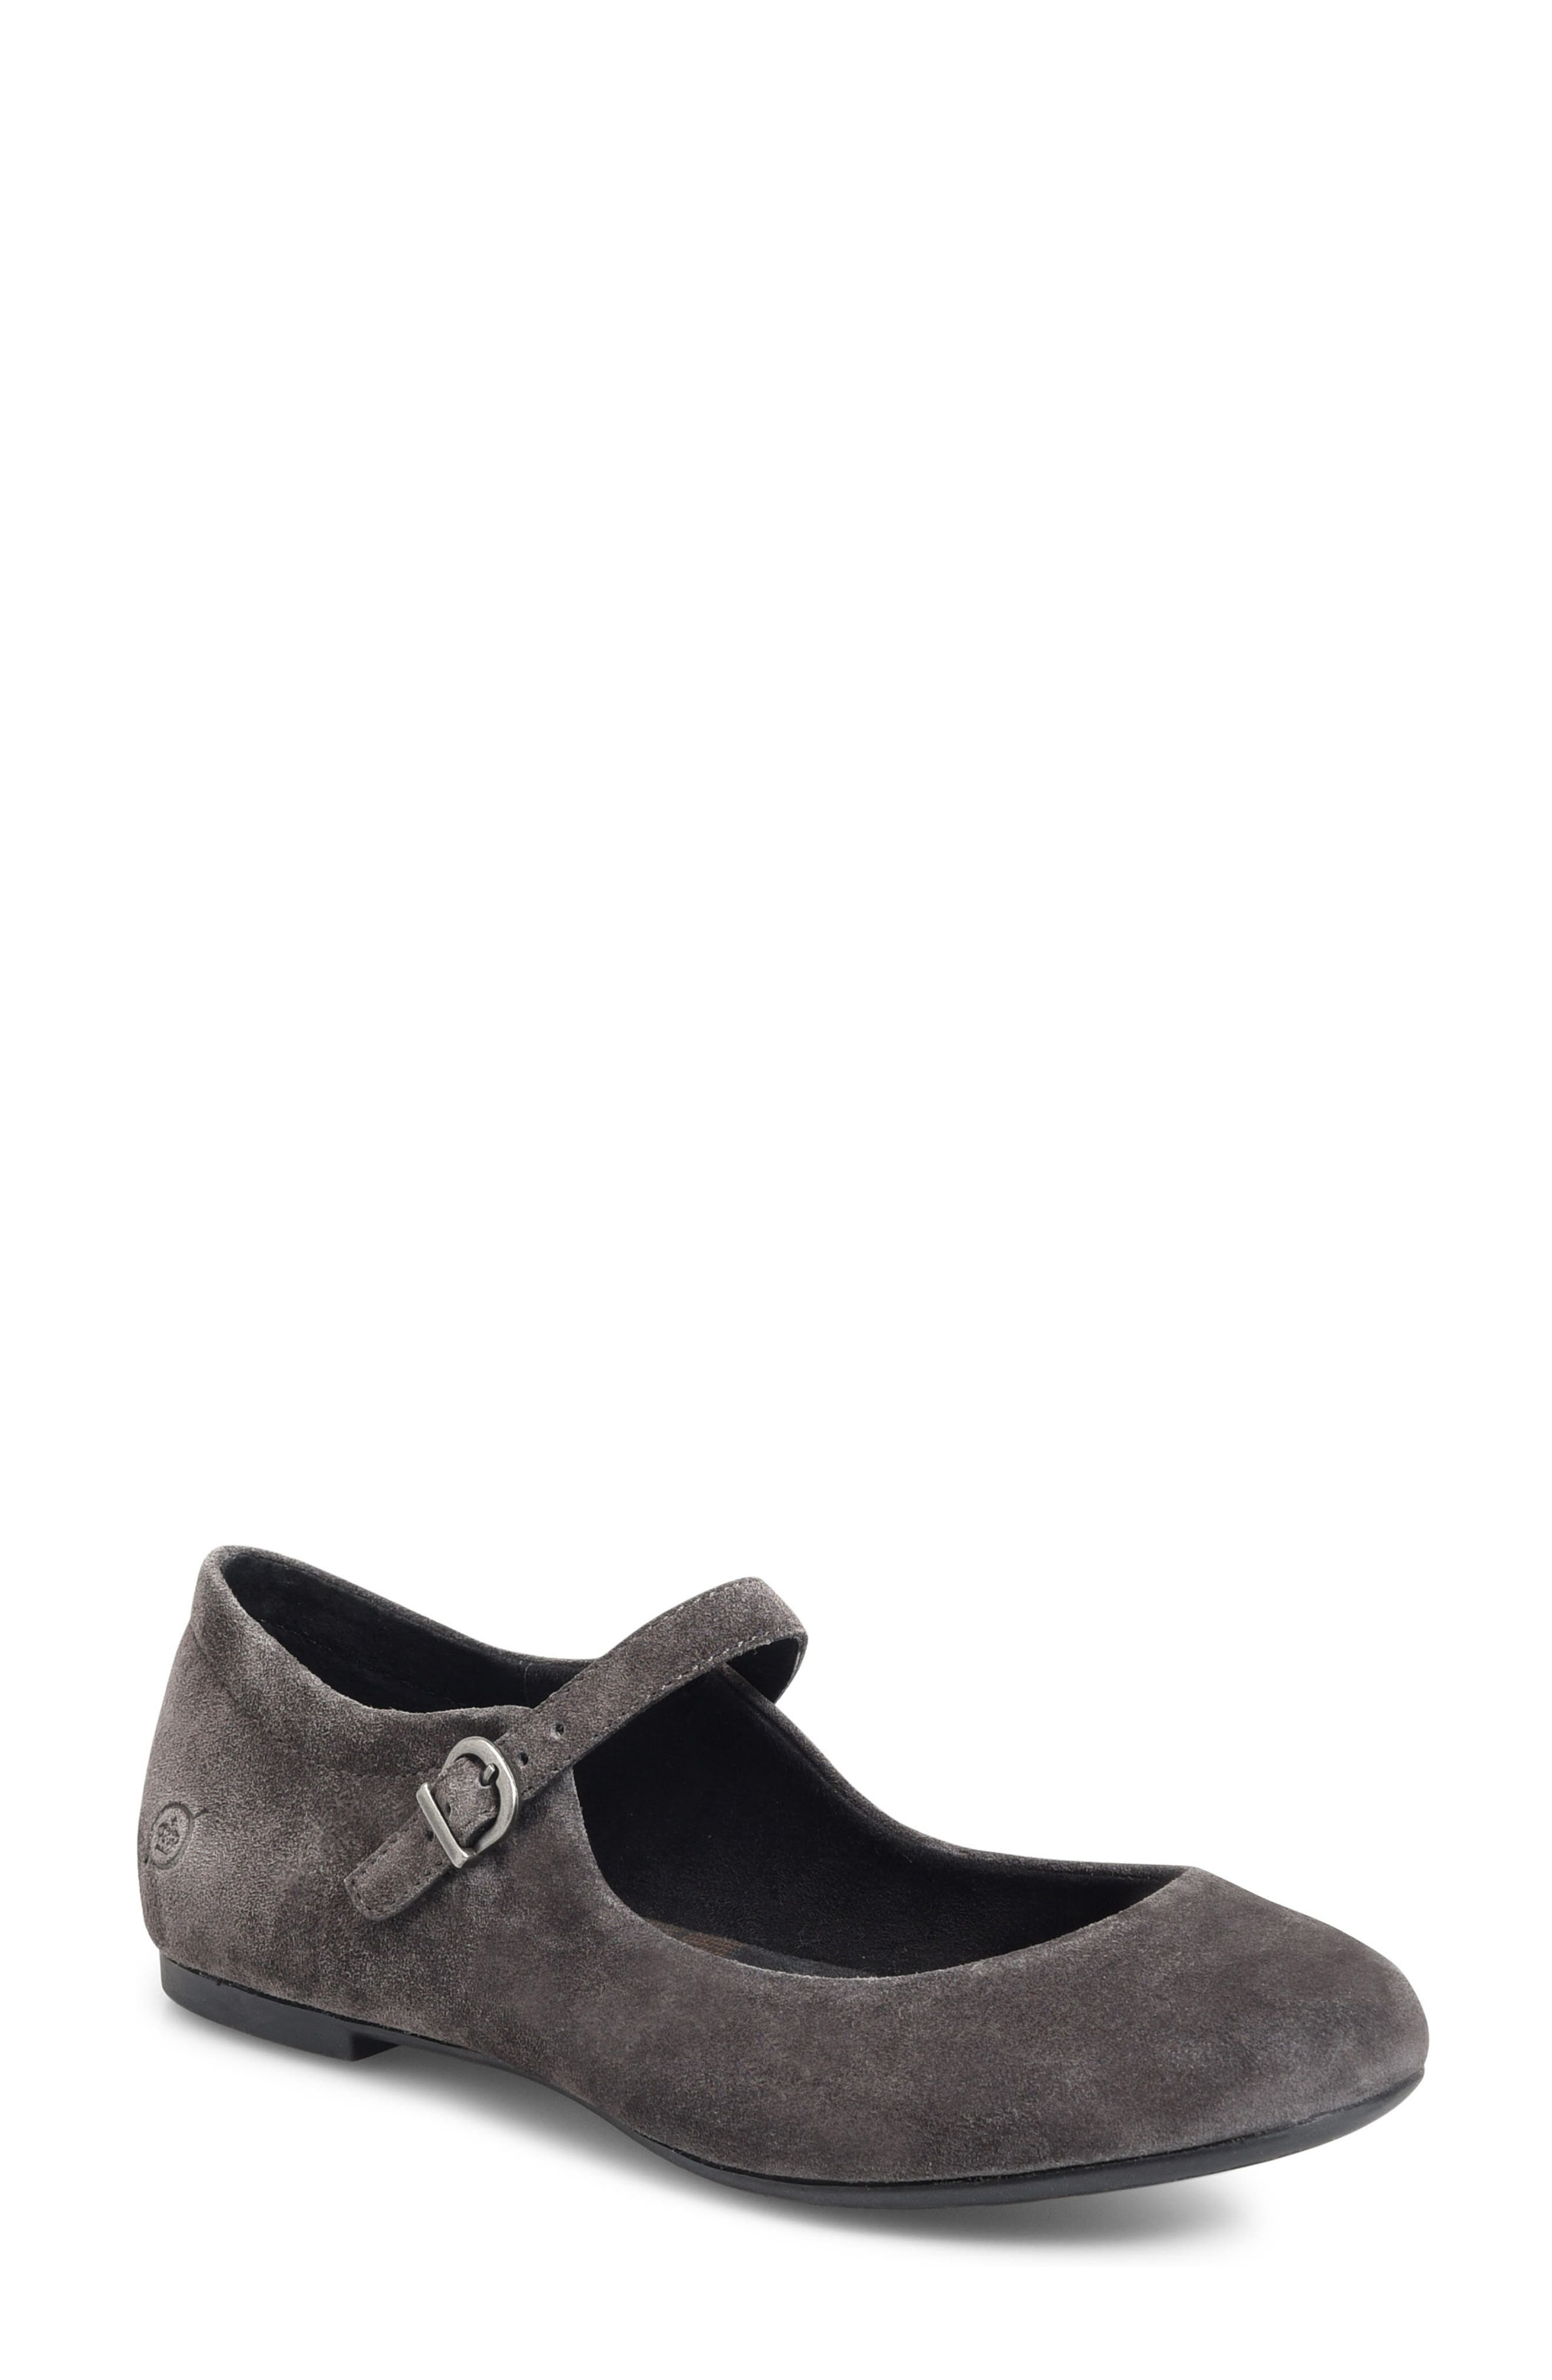 Arnor Mary Jane Flat,                             Main thumbnail 1, color,                             Dark Grey Suede